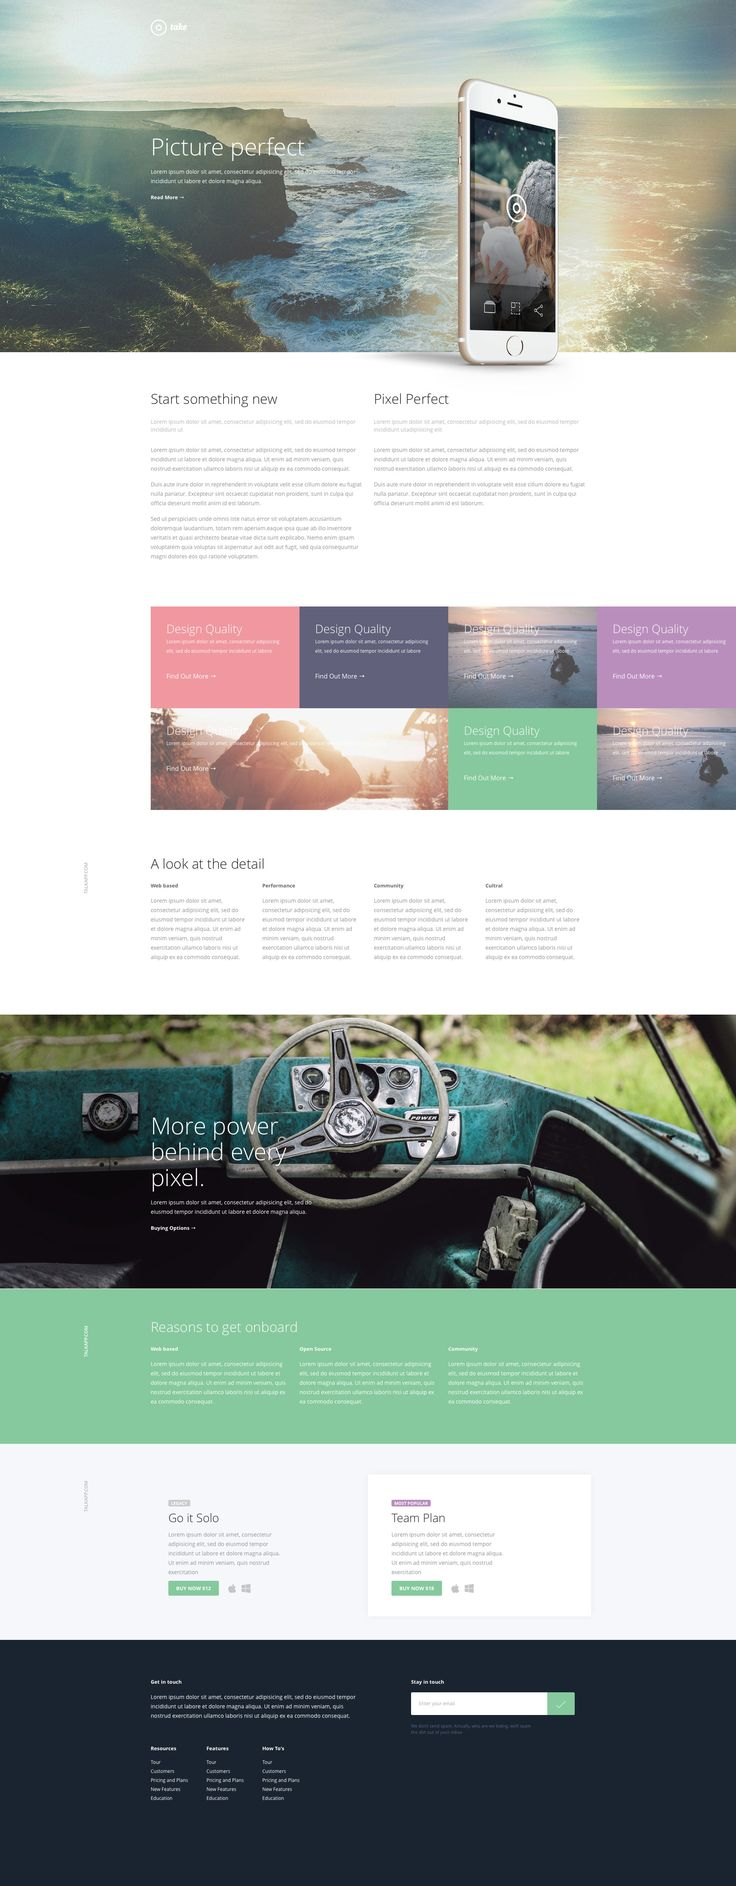 Take is a classy free one pager HTML5 template for a web or mobile app based application. Take template is using the responsive Twitter Bootstrap framework so it is easy to customise. Take is a fully responsive and Retina-ready HTML5 template.